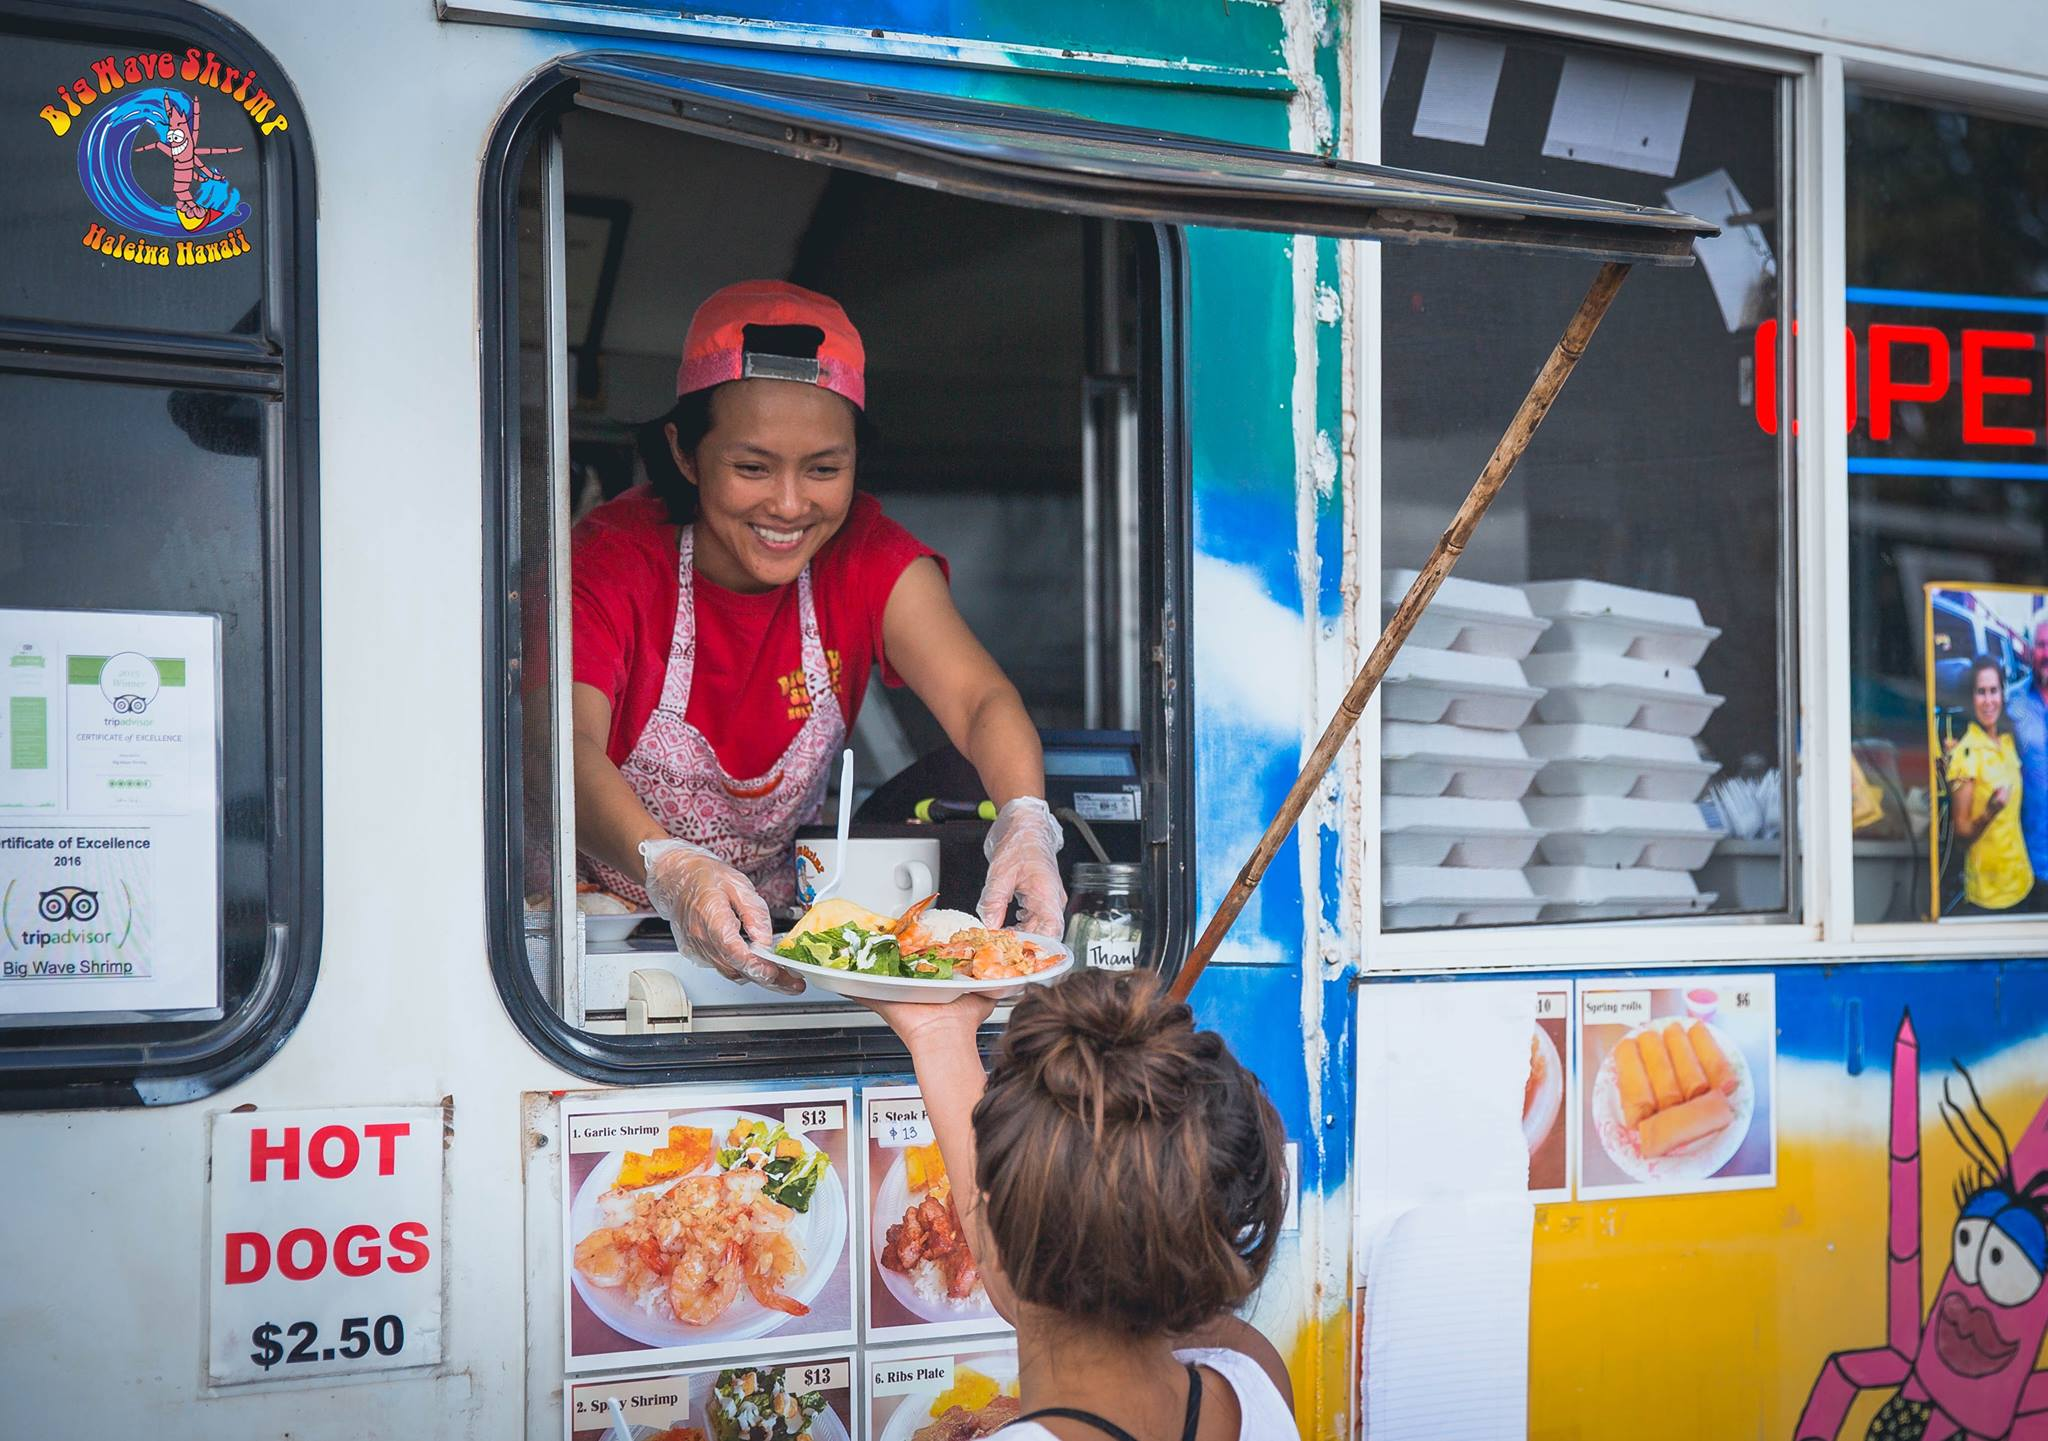 Food Trucks in Hawaii: Manapua Man to Big Wave Shrimp